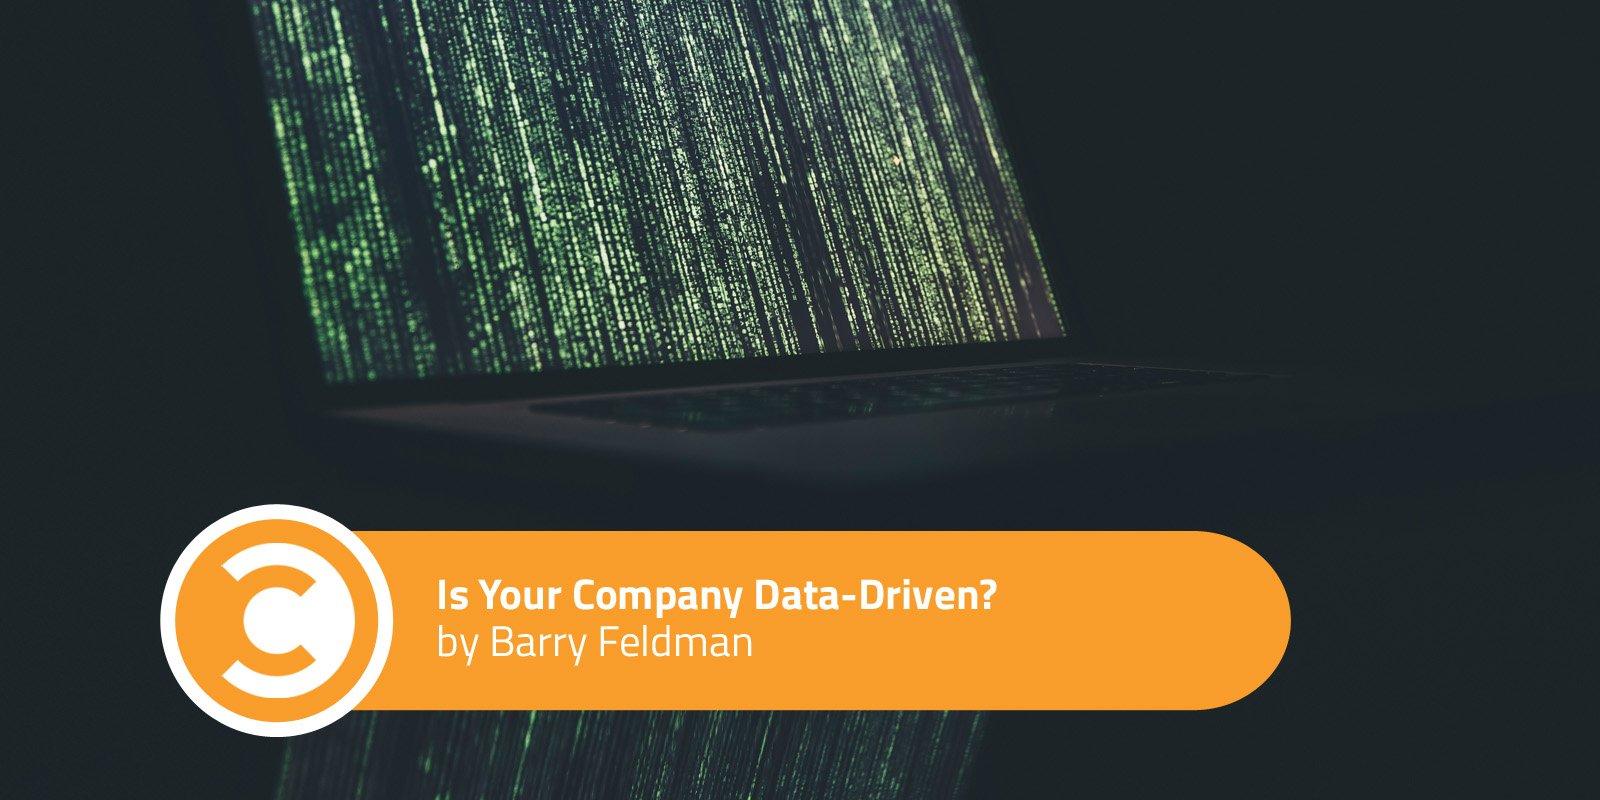 Is Your Company Data-Driven